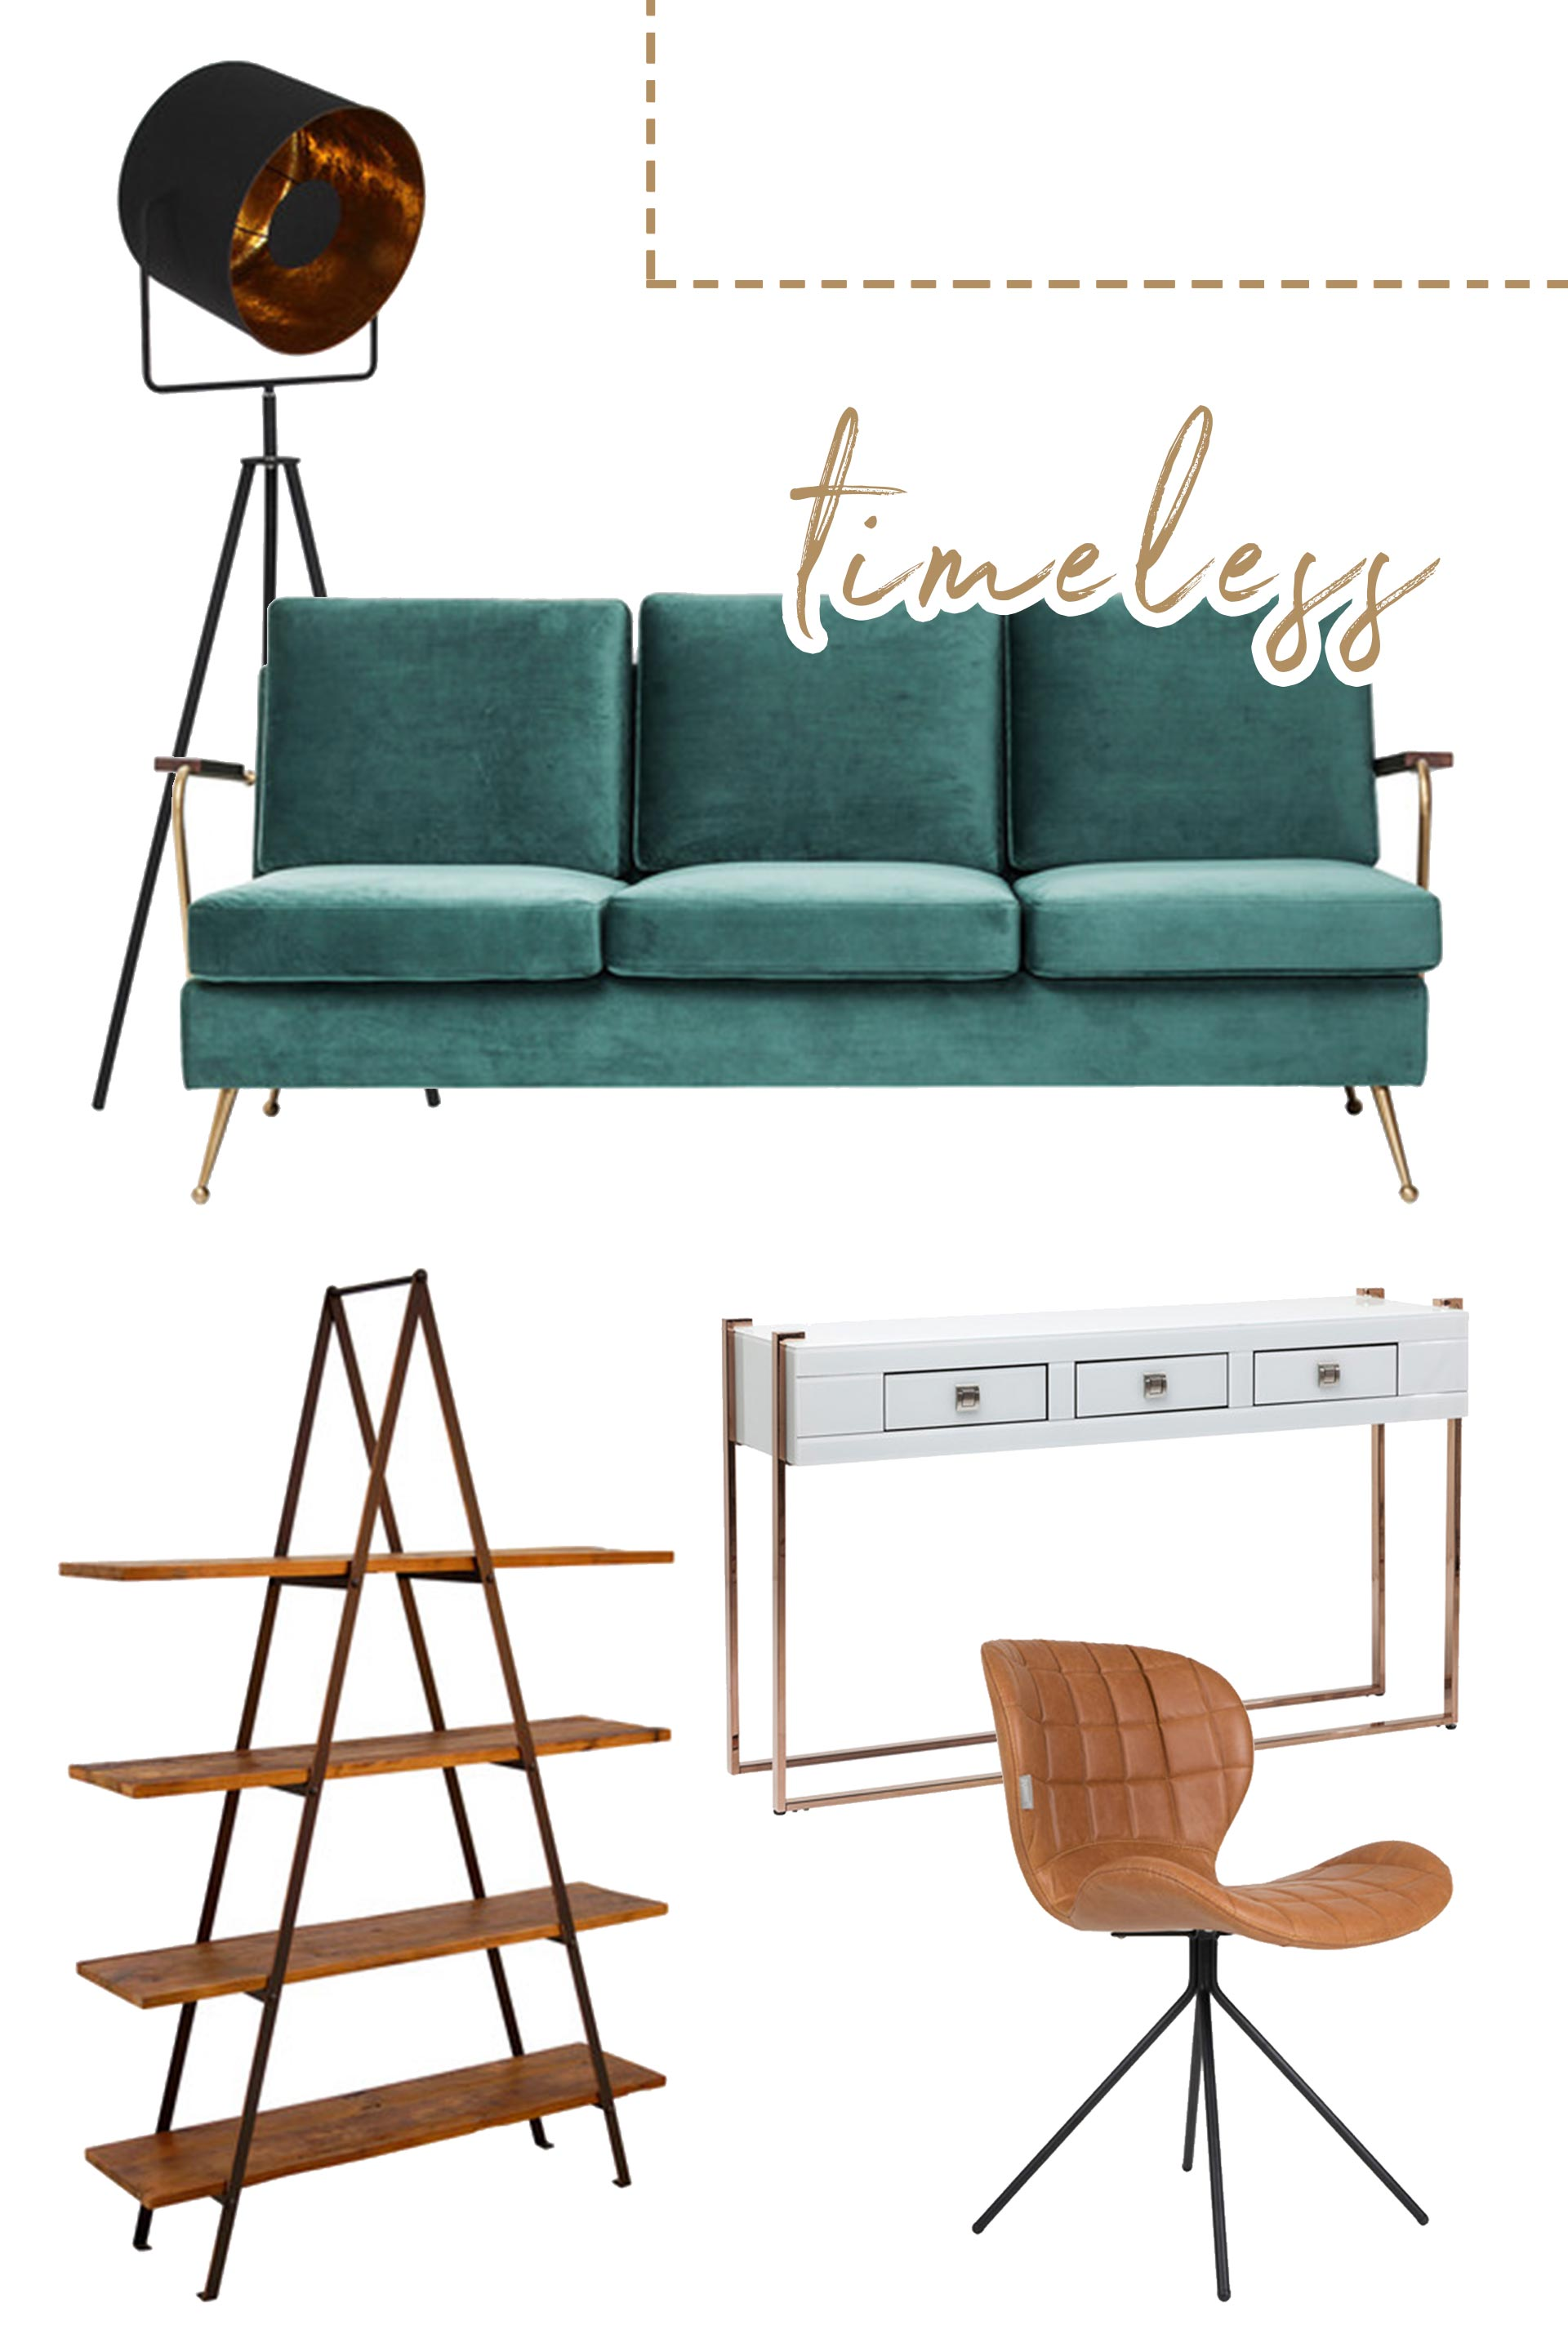 Das sind die Top 5 Deko- und Wohntrends im Herbst 2017, Deko Trends, Wohntrends, Einrichtungstrends, Style Blog, Interior Magazin, Interior Blog, www.whoismocca.com